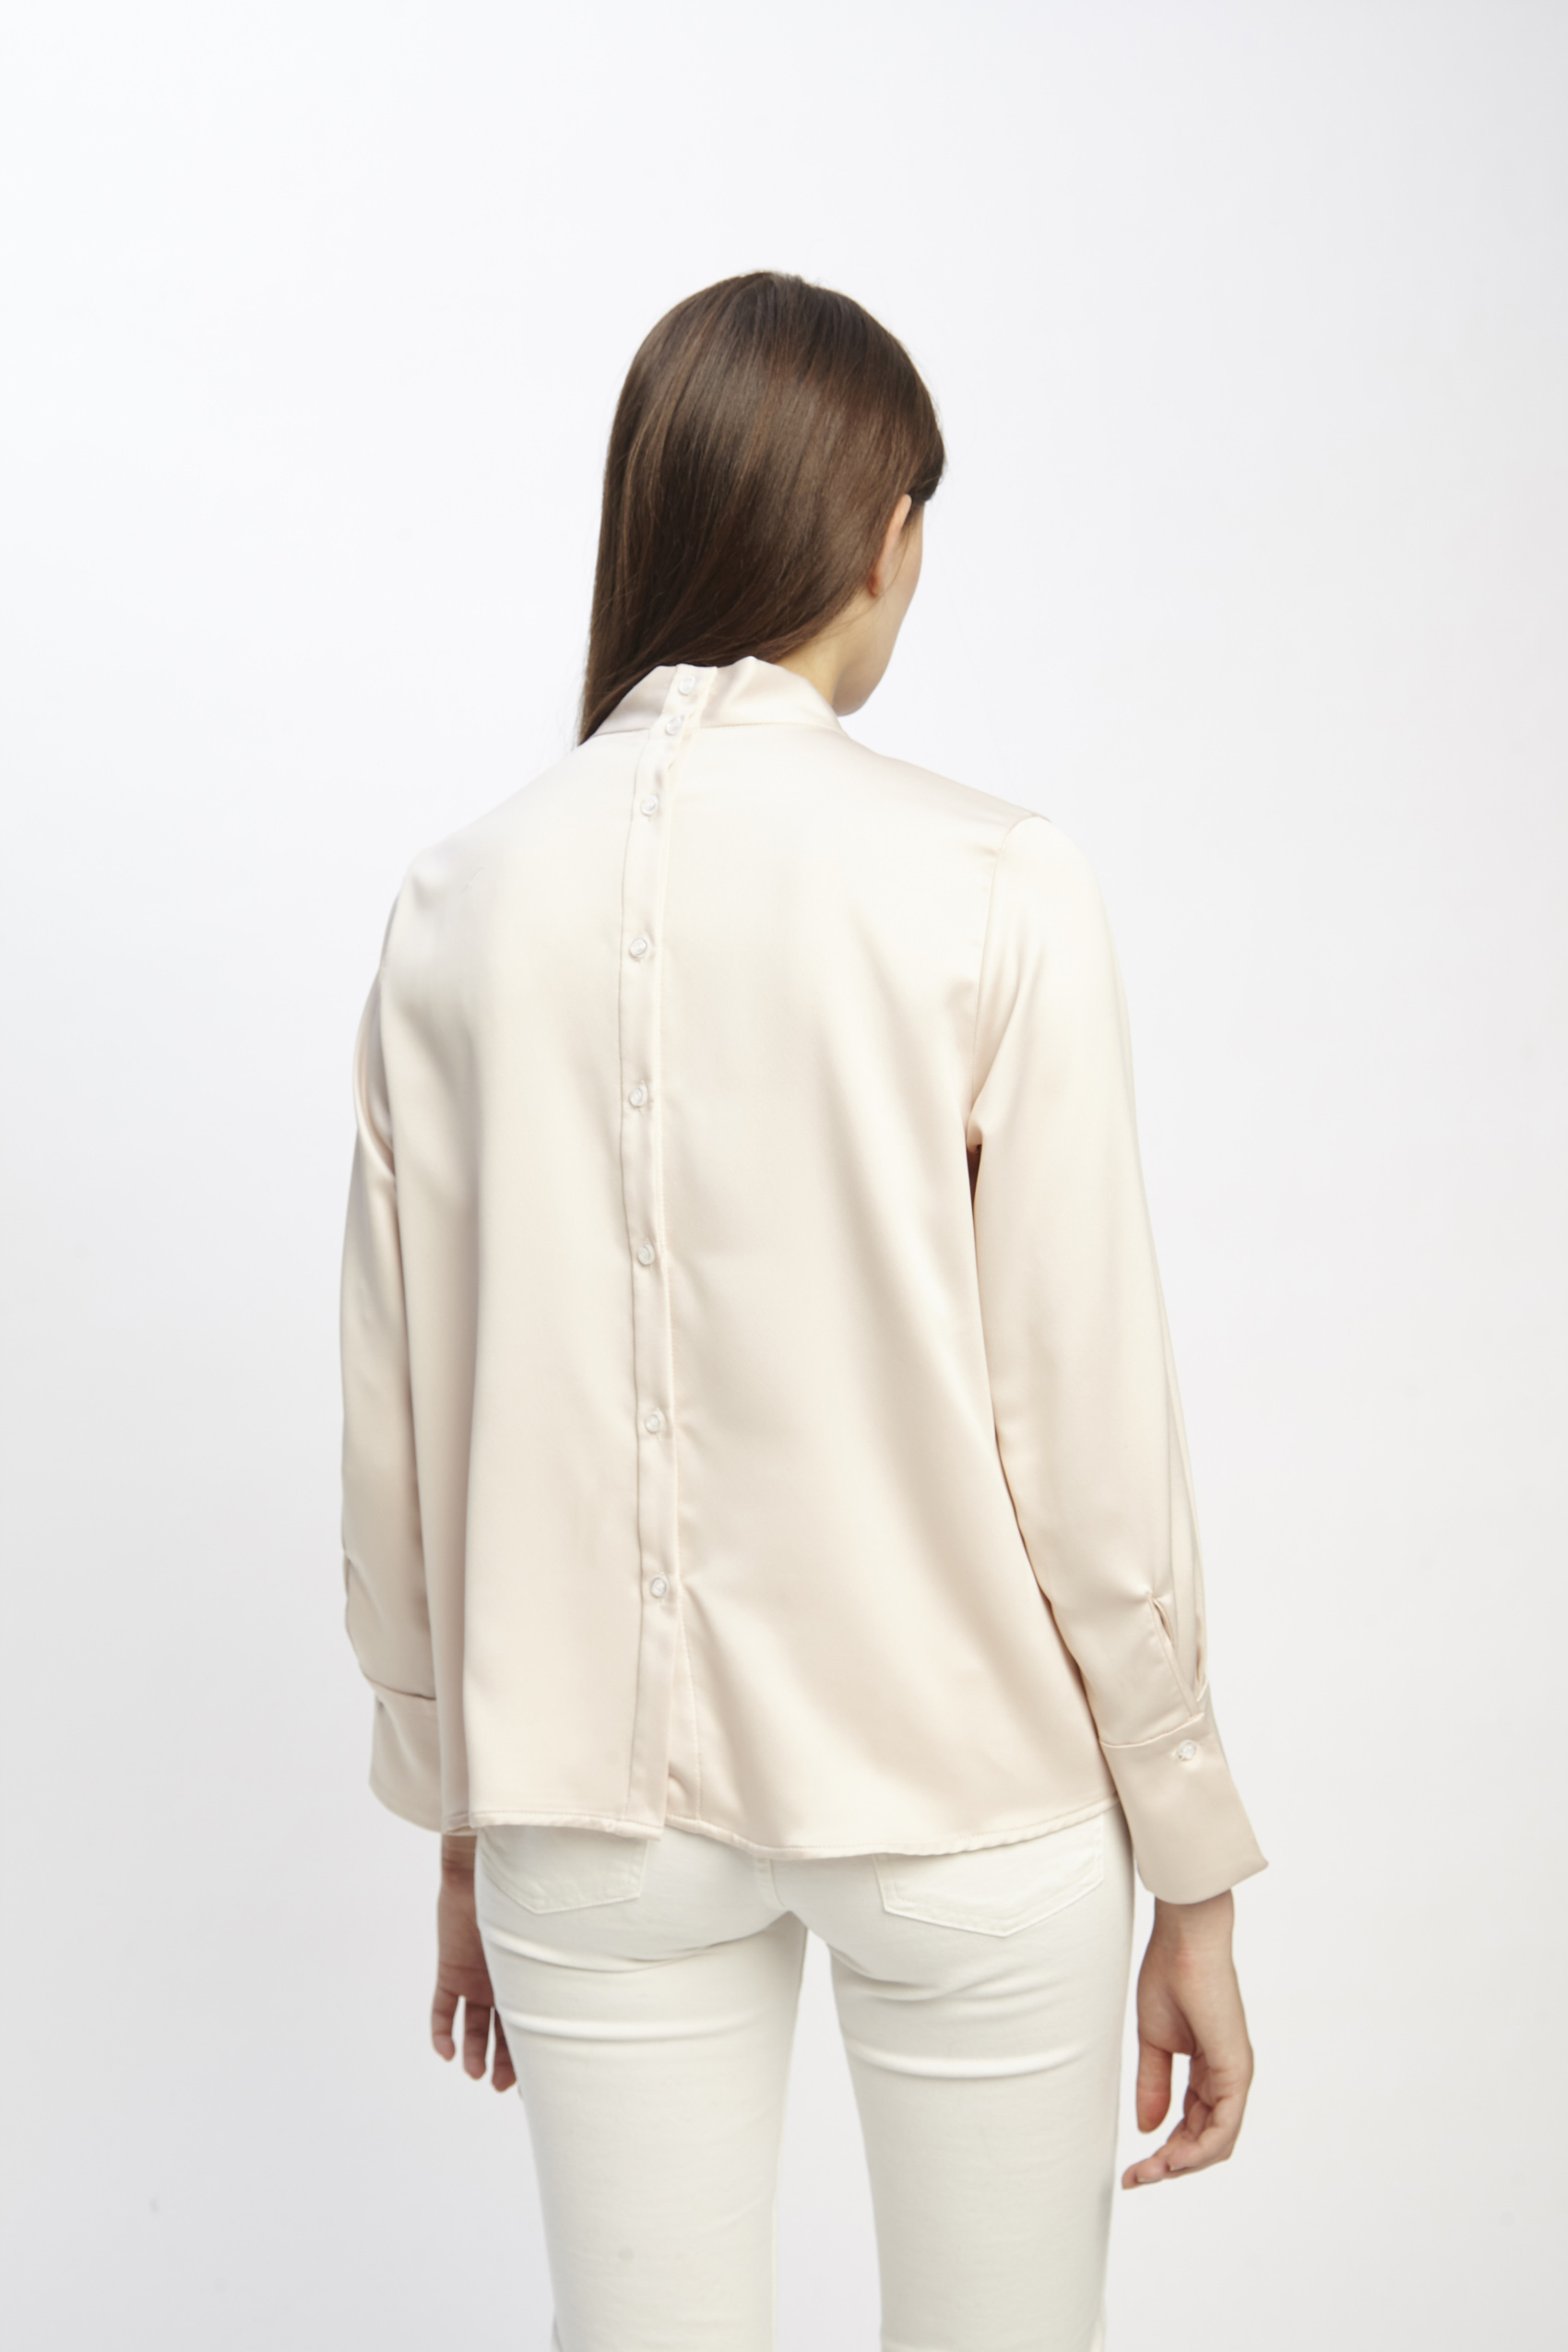 awada_blusa-helena_28-31-2020__picture-1851